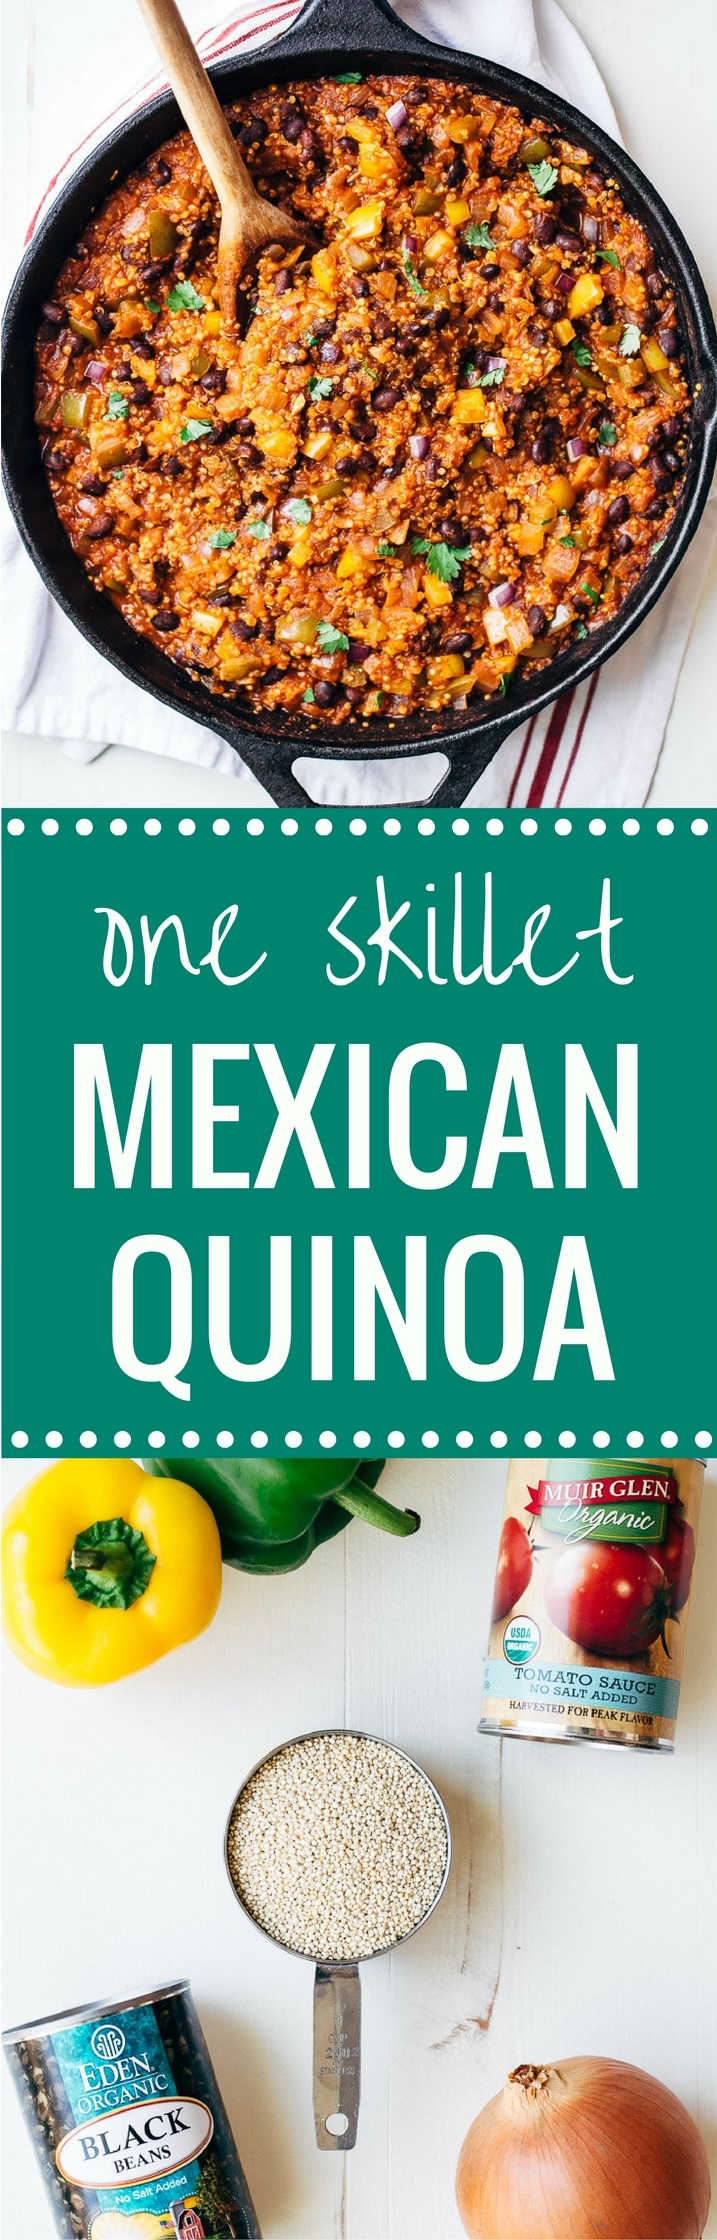 One skillet mexican quinoa making thyme for health one skillet mexican quinoa an easy one pot meal thats perfect for busy weeknights forumfinder Gallery